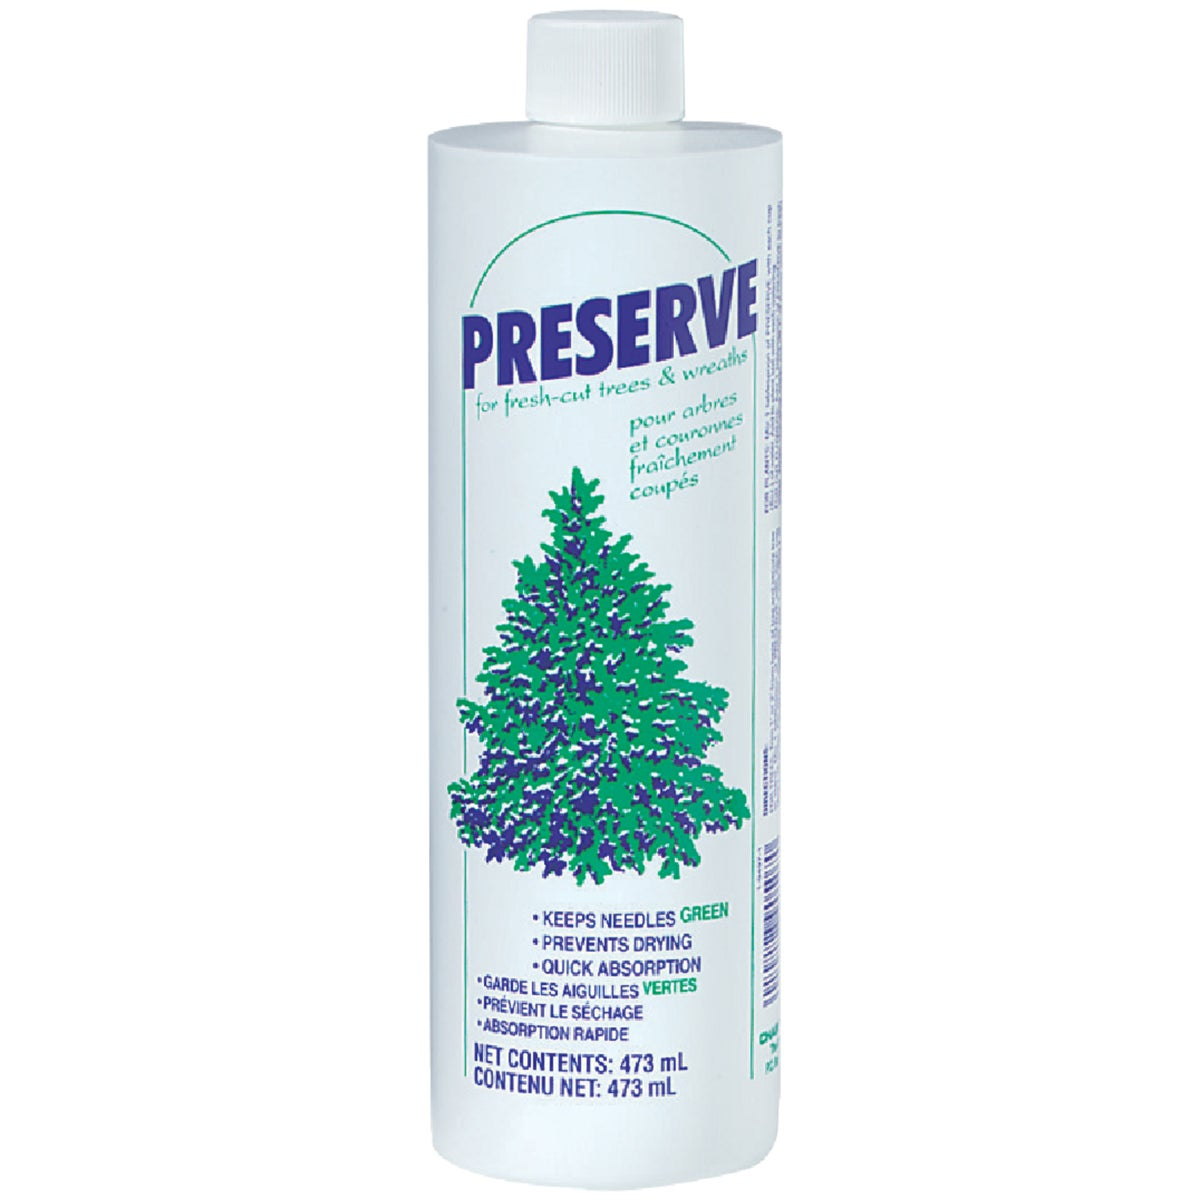 16OZ TREE PRESERVE - 499-0507 by Chase Products